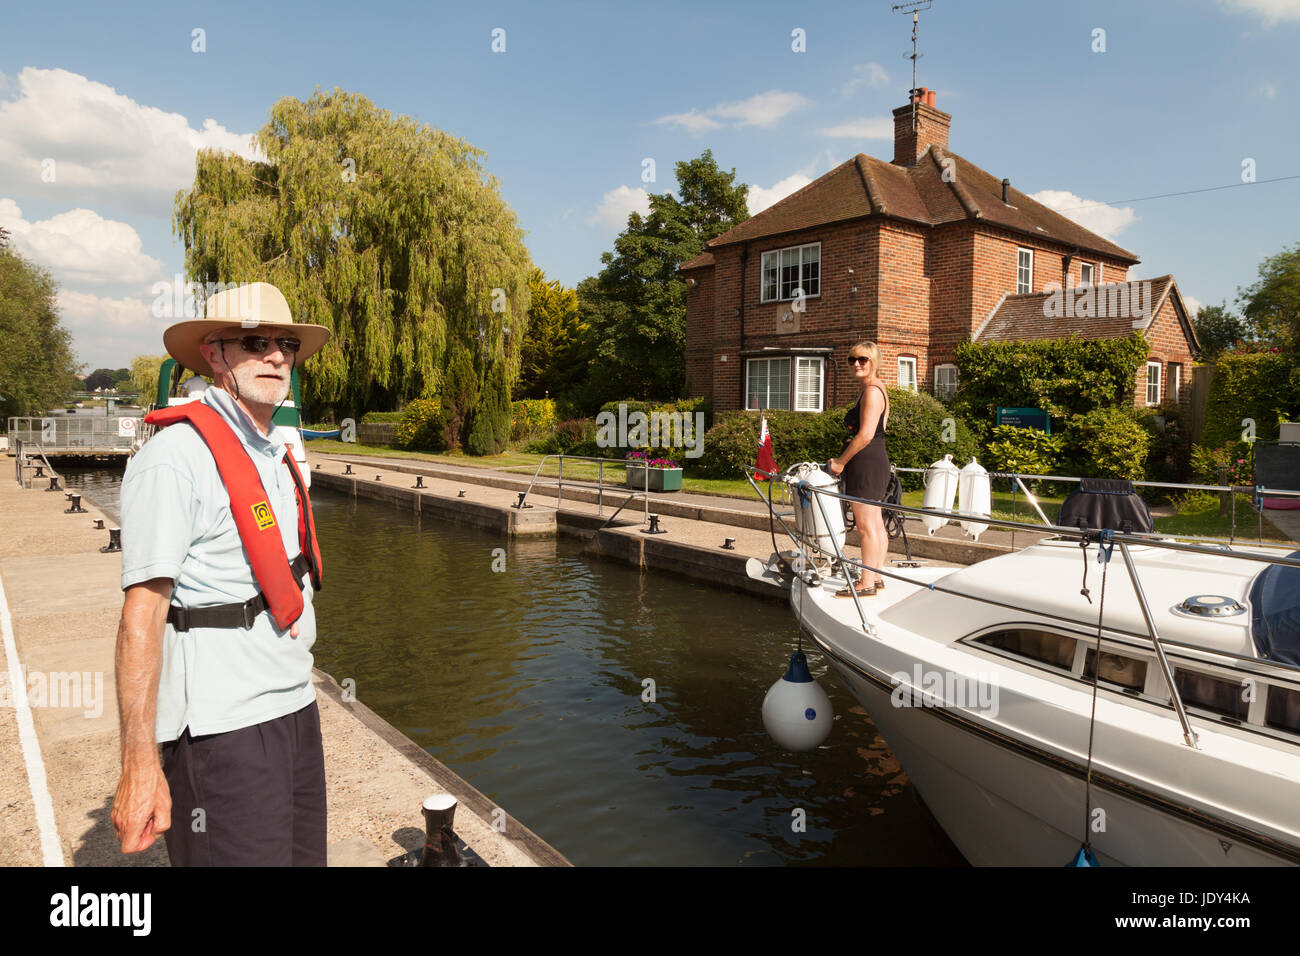 Lock keeper working at Shiplake lock on the River Thames in Oxfordshire England UK - Stock Image